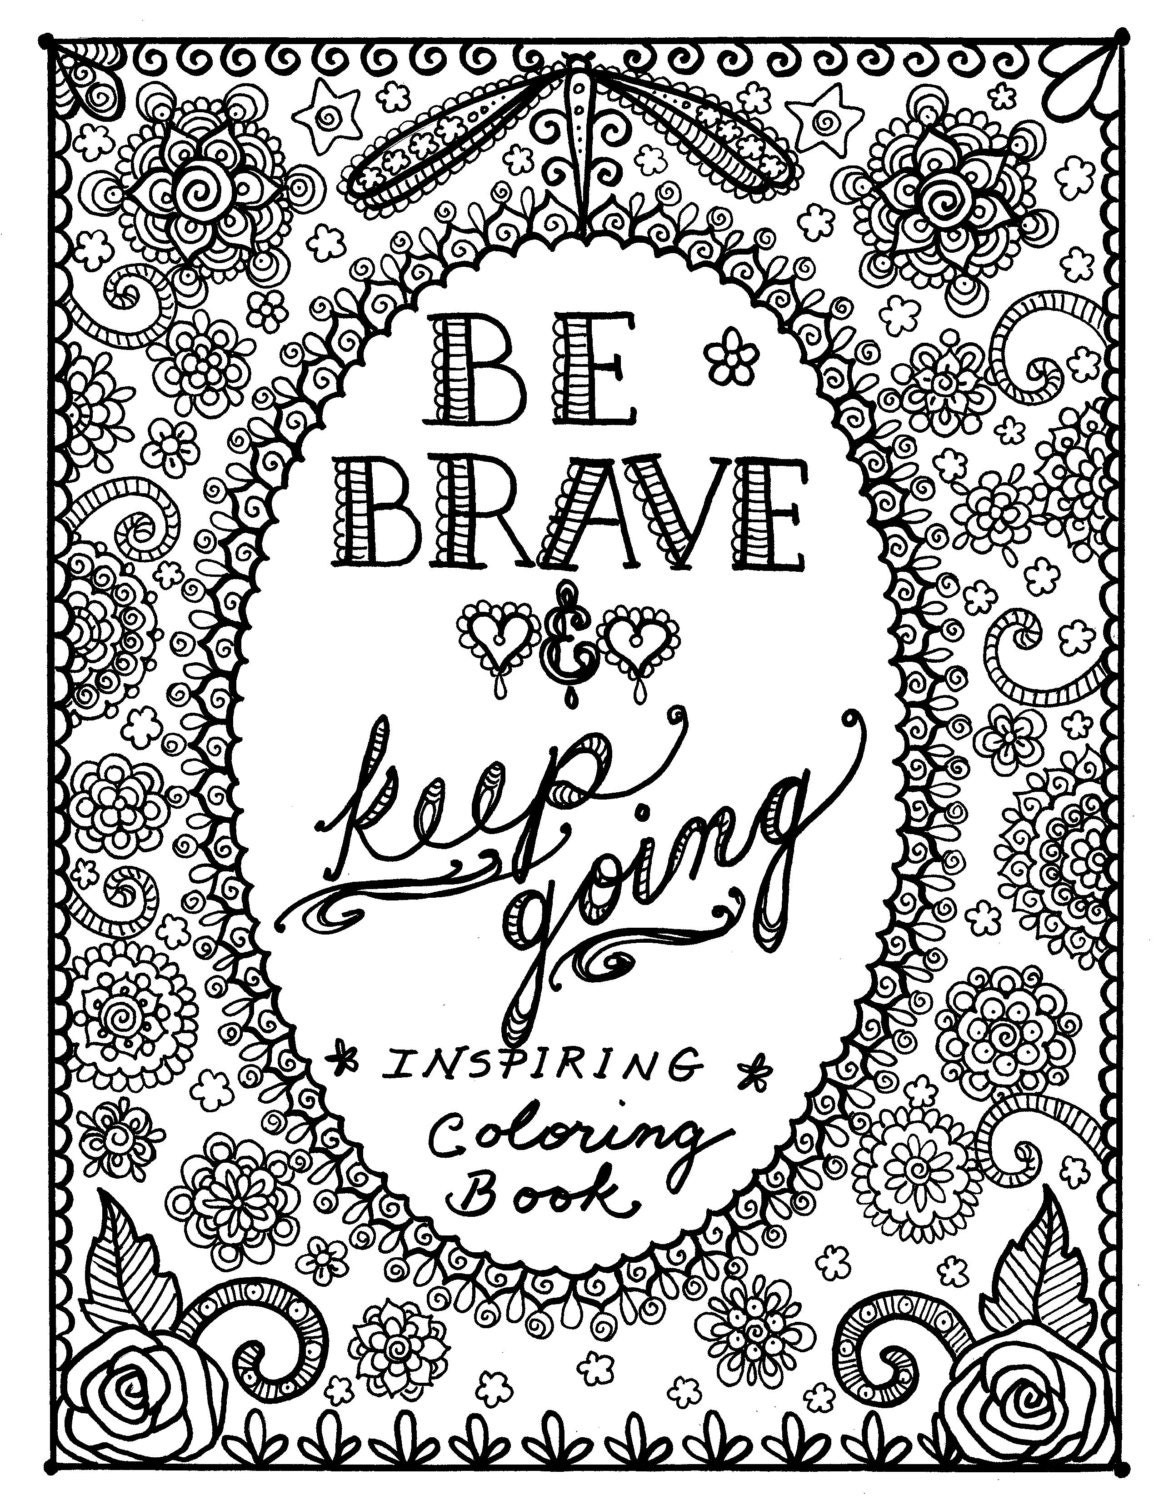 Inspirational Quotes Coloring Pages Printable : Motivational Quotes Coloring Pages. QuotesGram